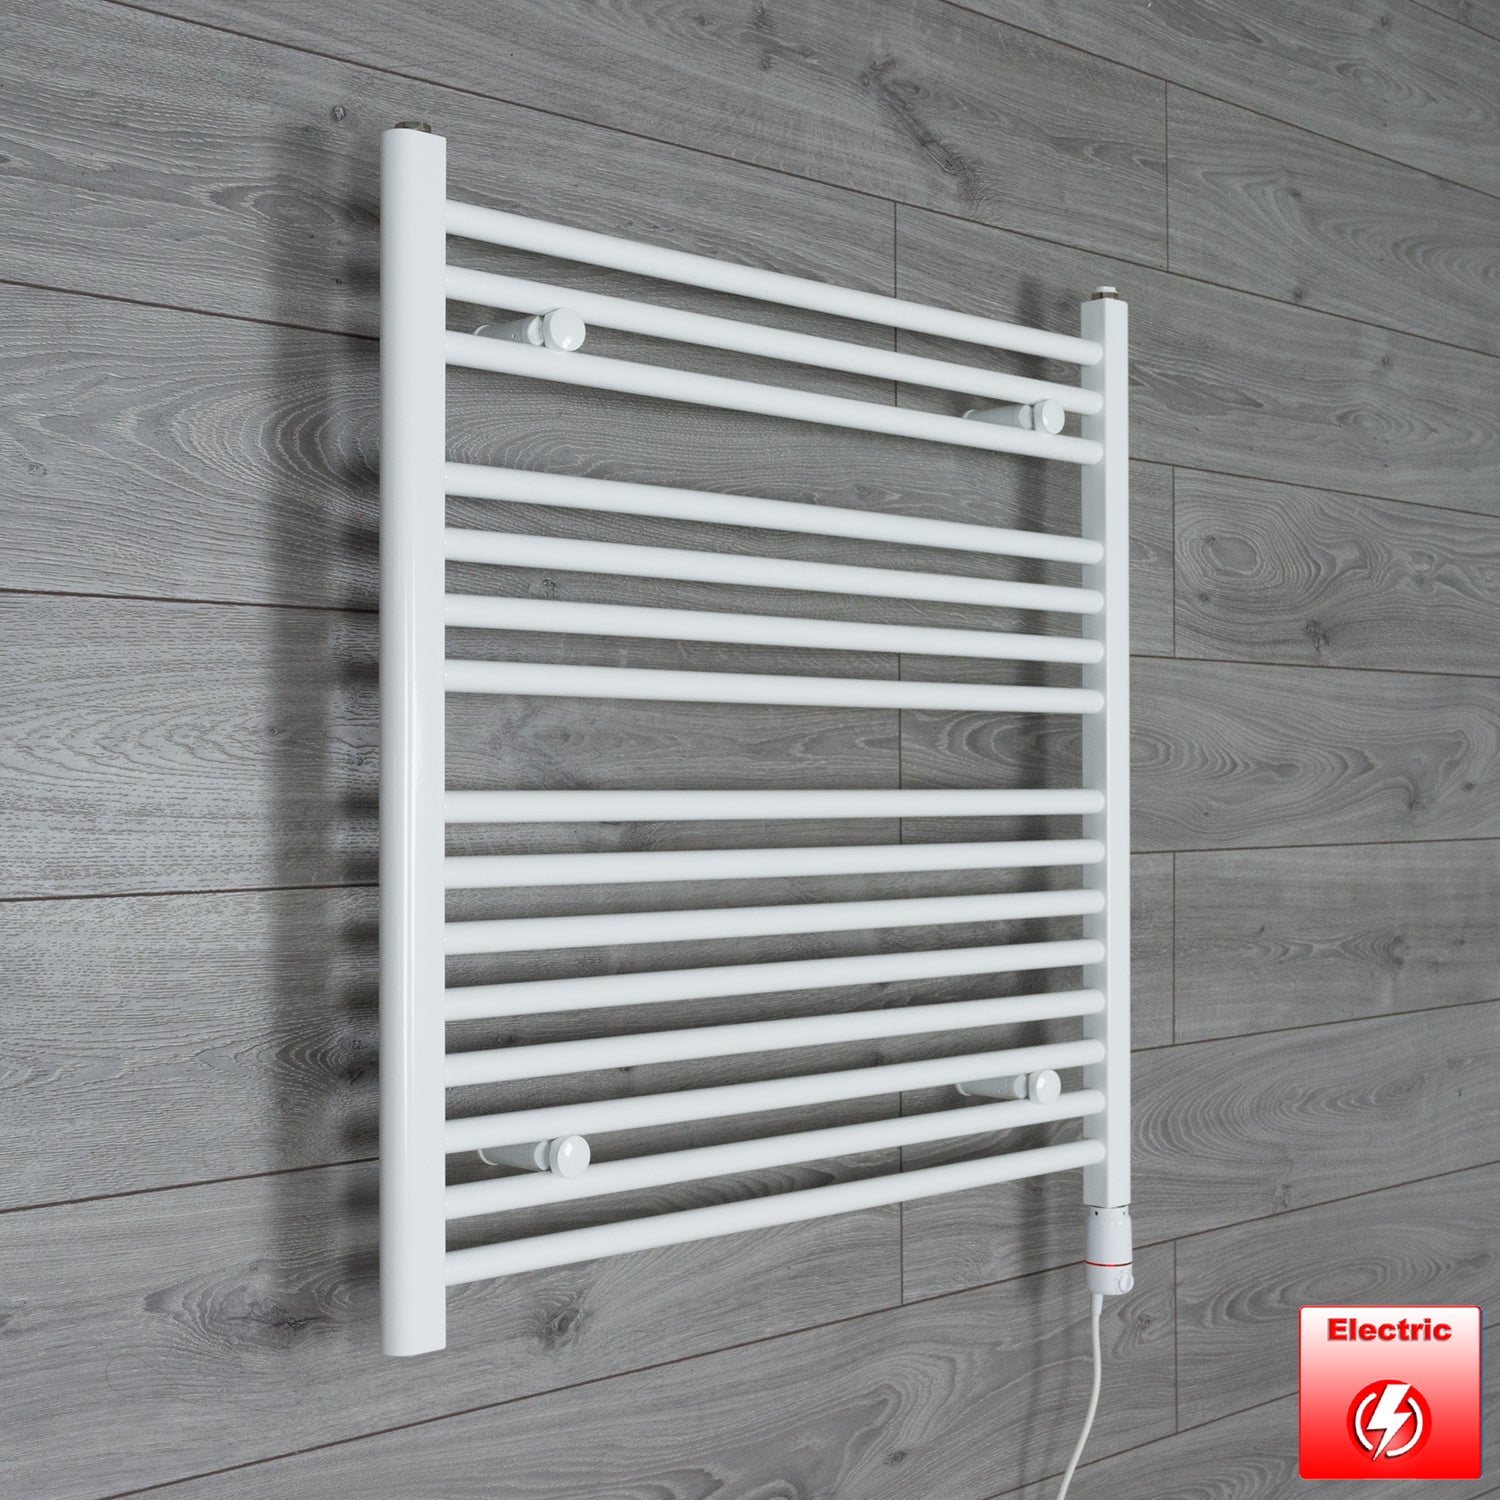 850mm Wide 800mm High Flat WHITE Pre-Filled Electric Heated Towel Rail Radiator HTR,GT Thermostatic